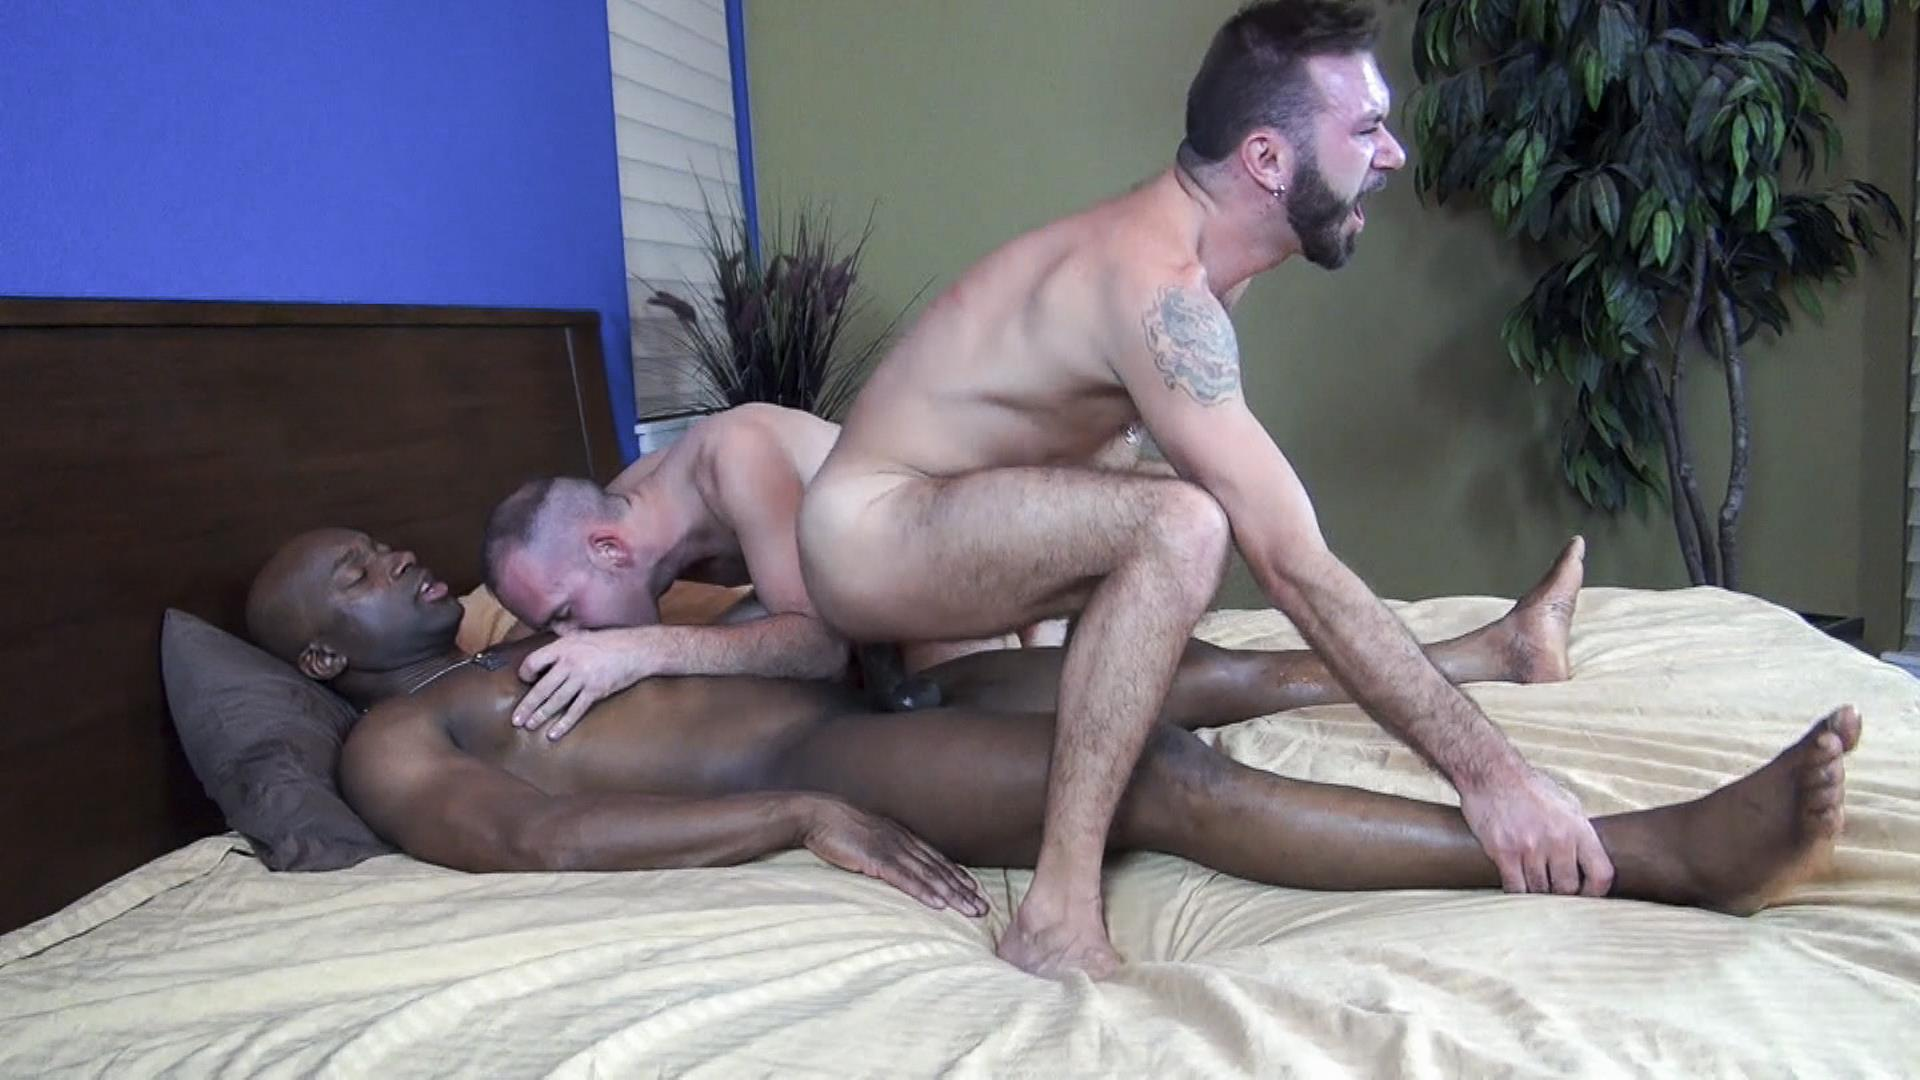 Blonde gay sucking cock tumblr